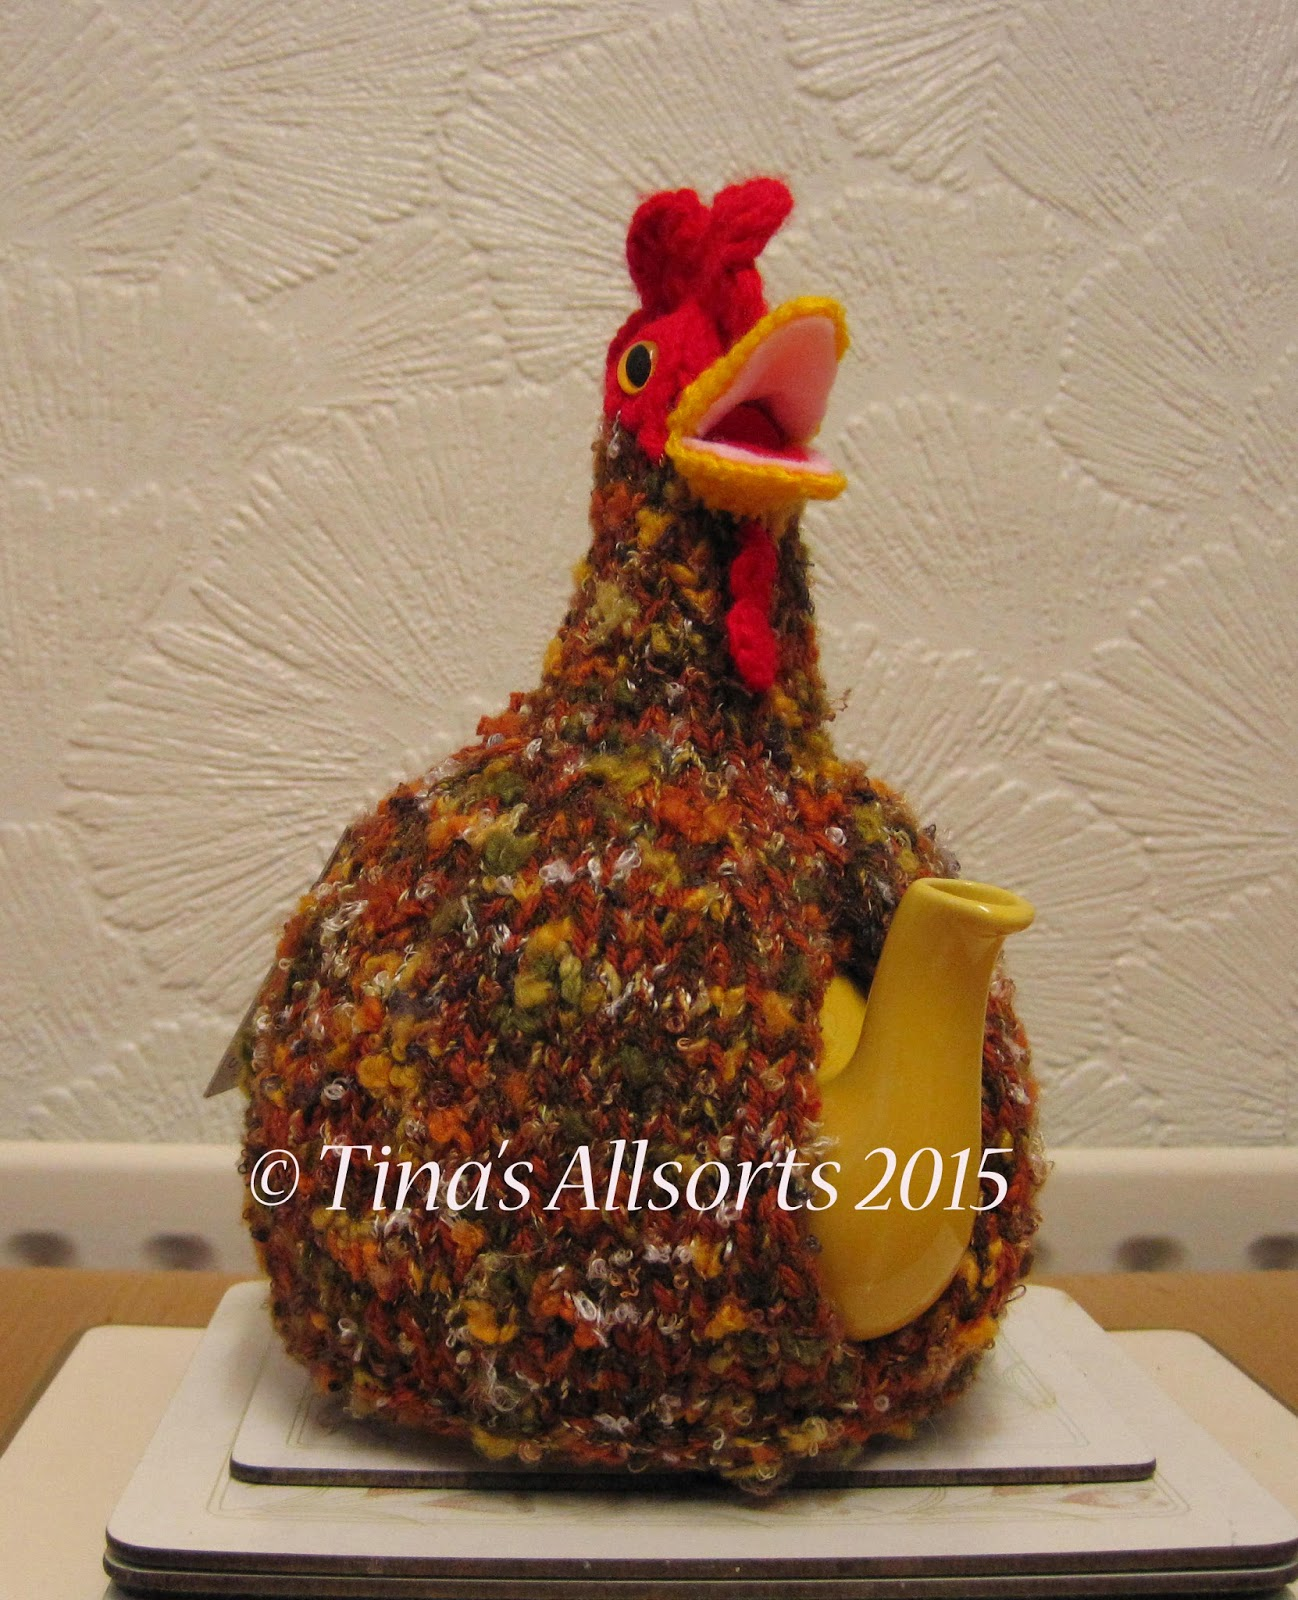 Tina's Allsorts James the Chicken